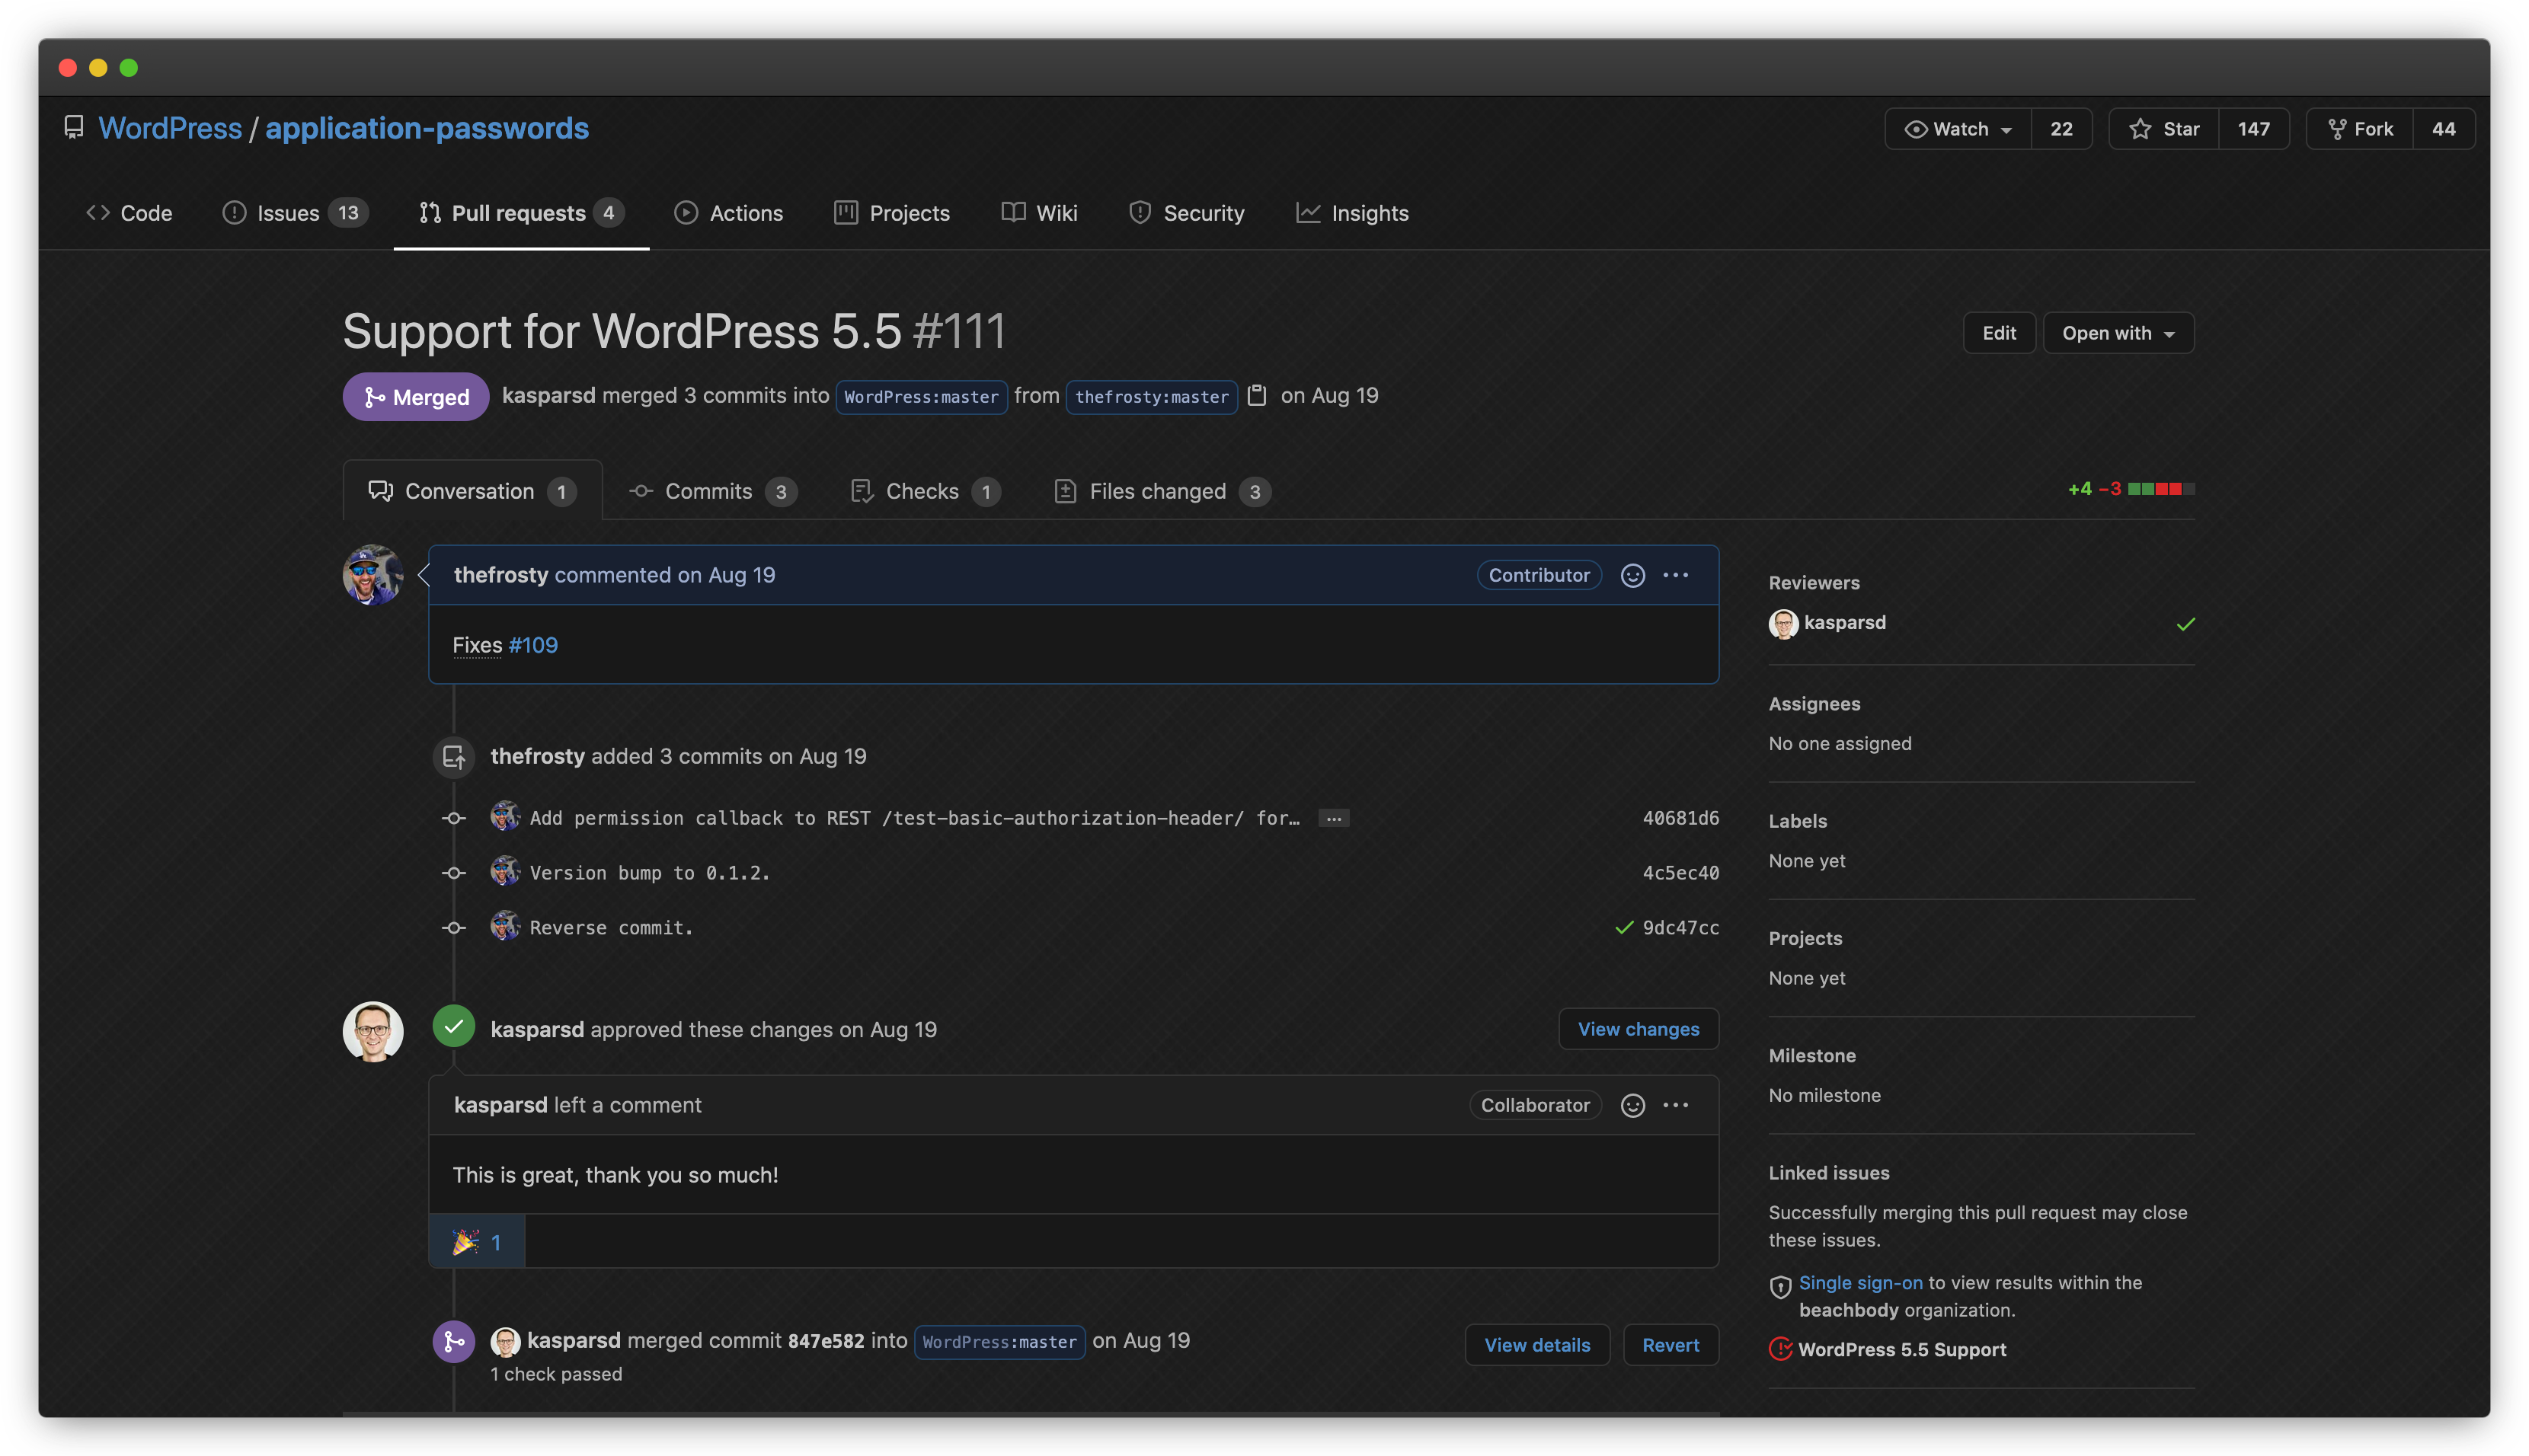 GitHub: Application Passwords Support for WordPress 5.5